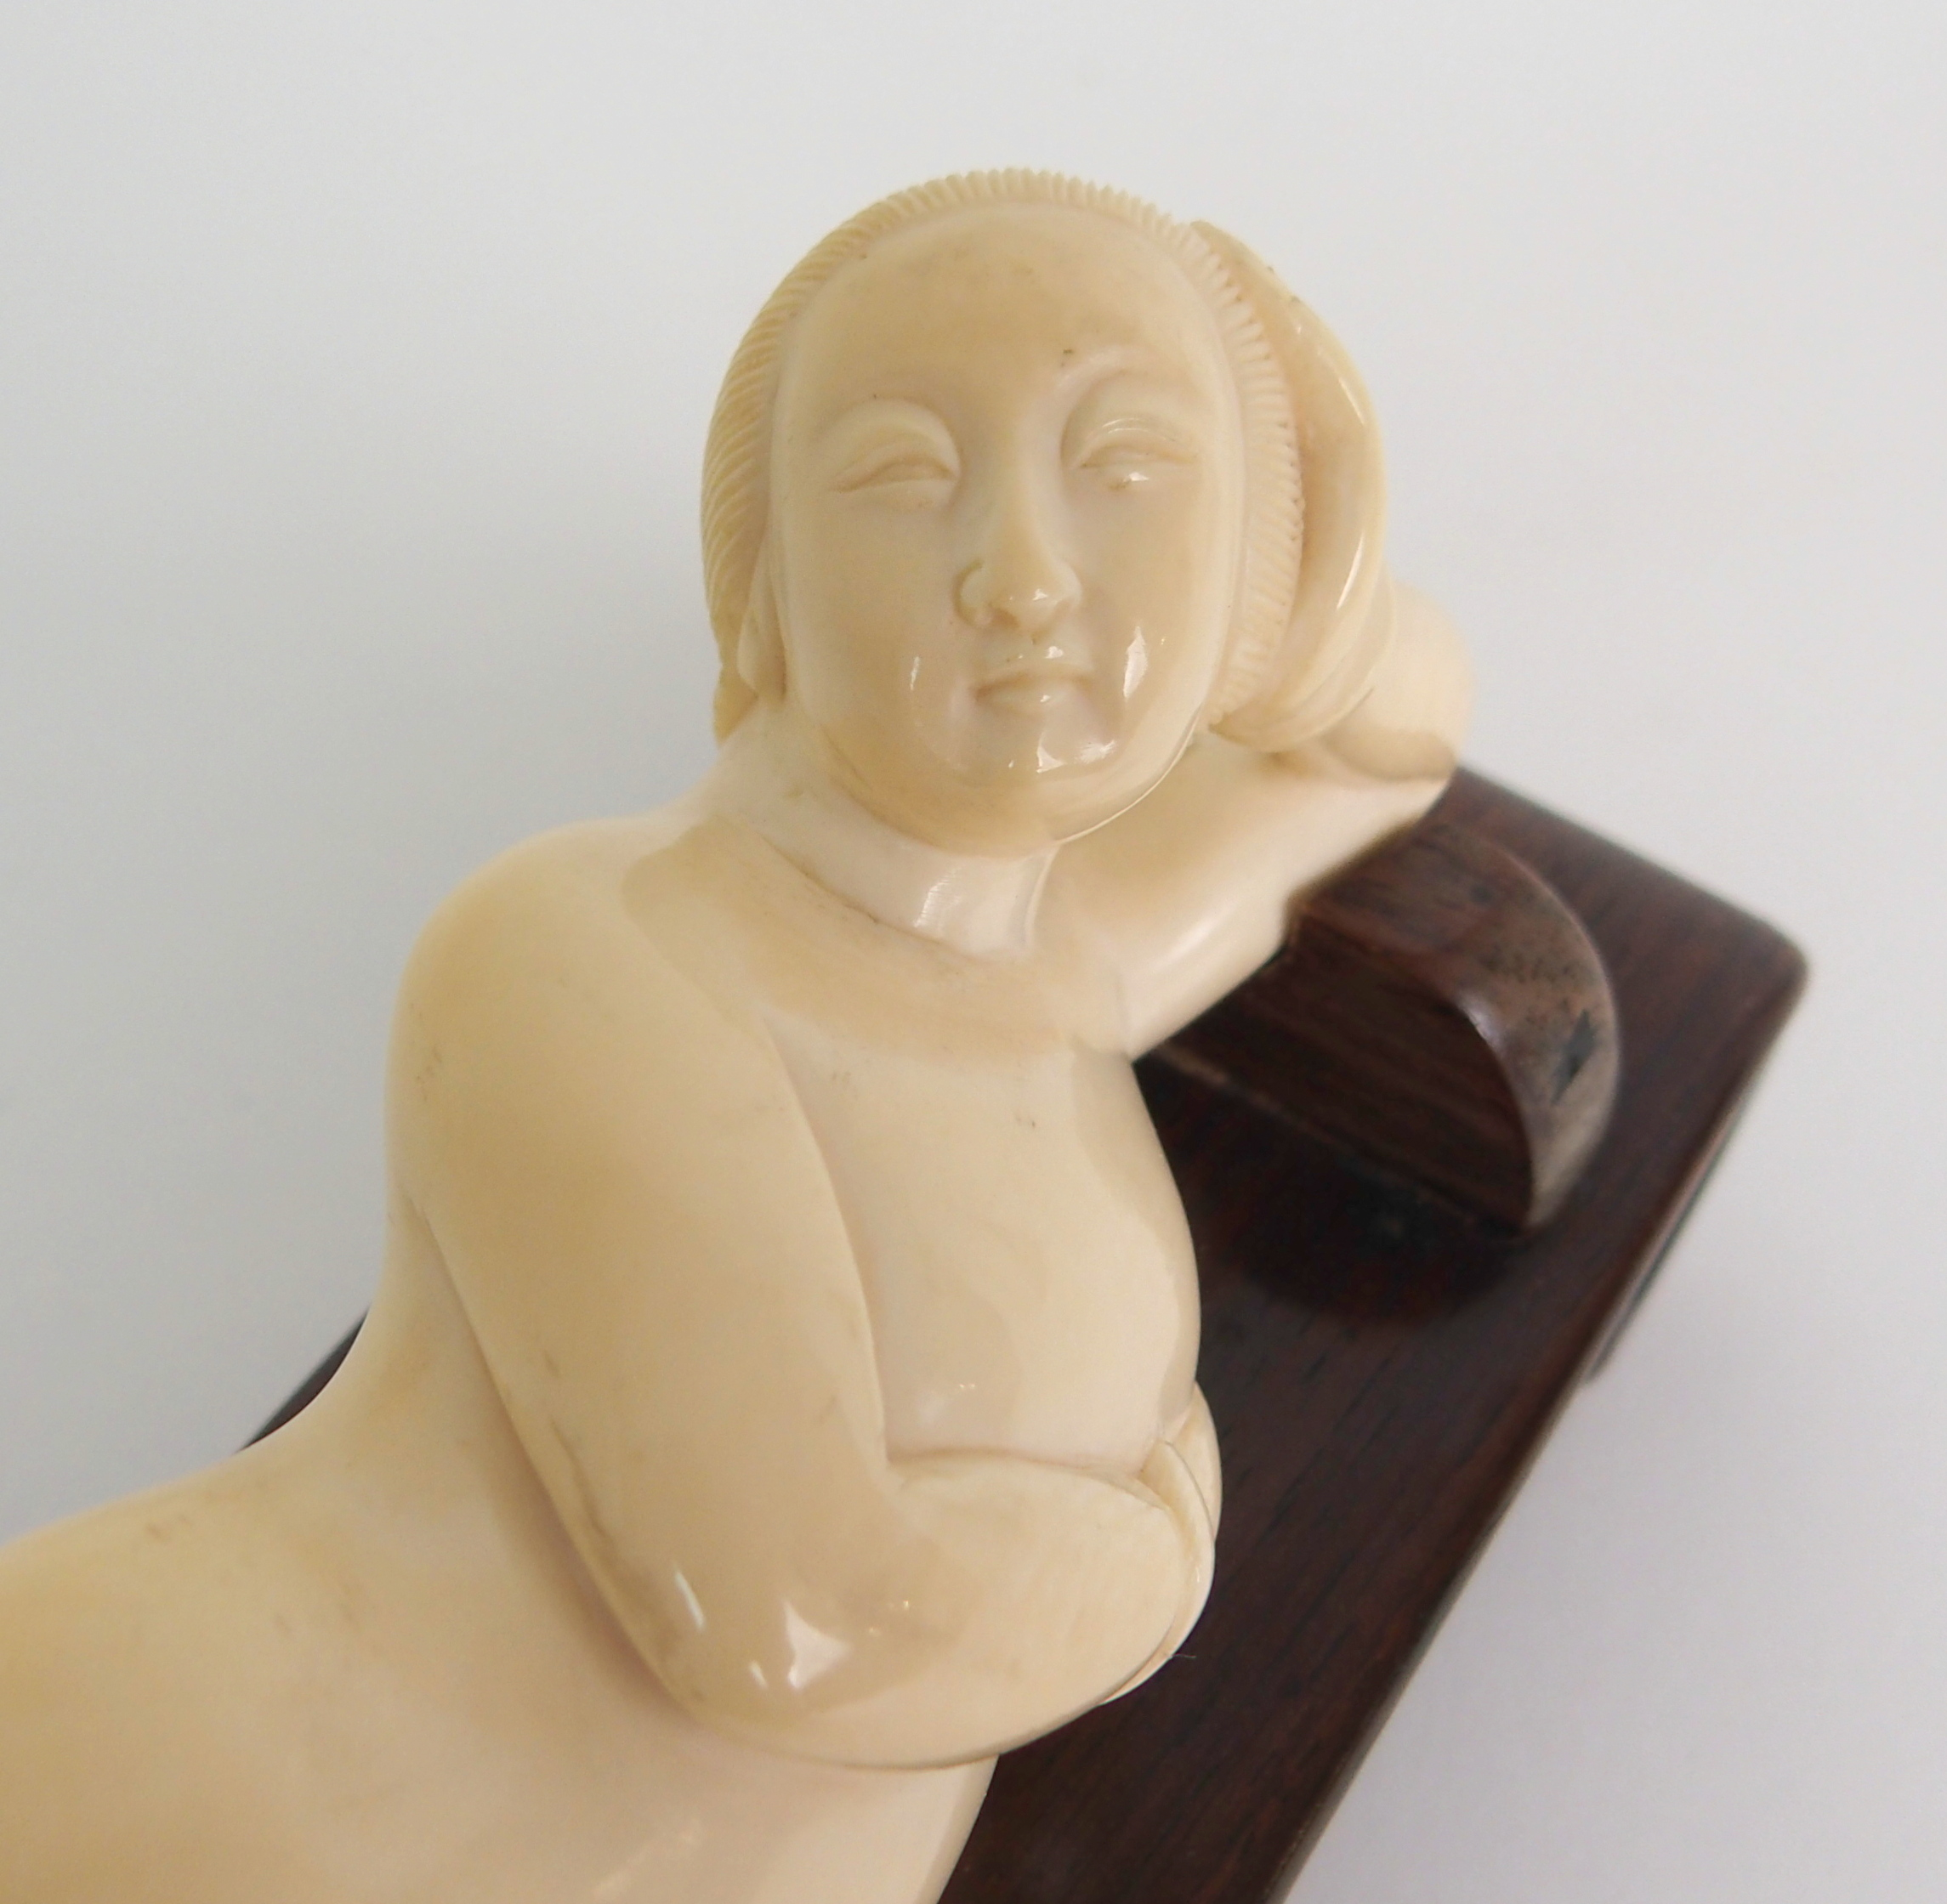 Lot 60 - A CHINESE CARVED IVORY MEDICINE LADY the reclining nude with hand on head and breast, wearing a pair